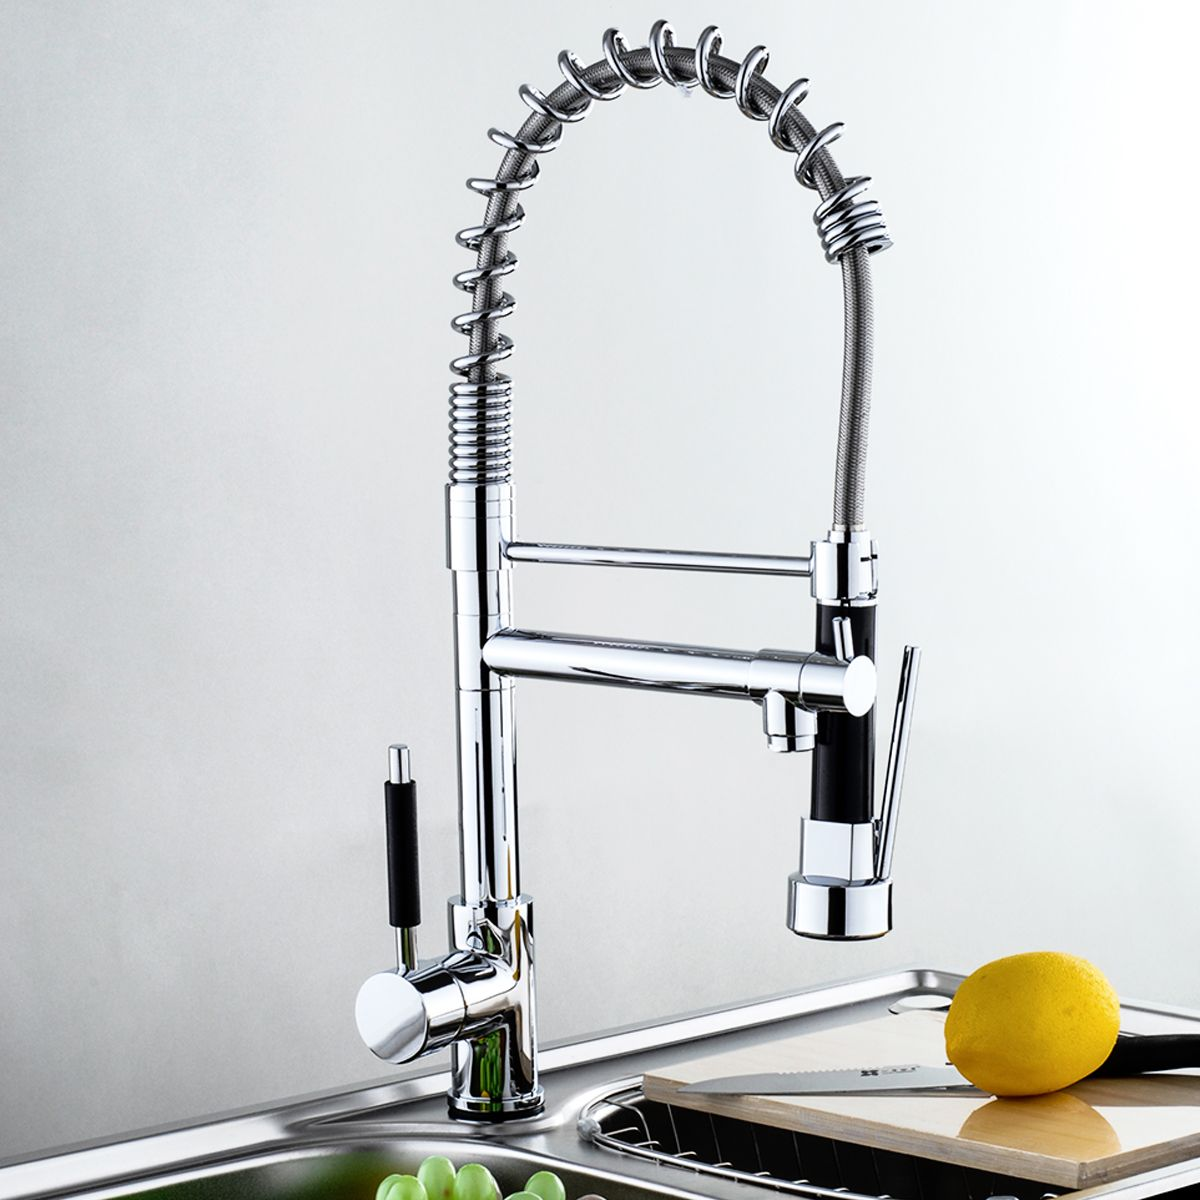 kitchen faucet with sprayer. commercial kitchen faucets with